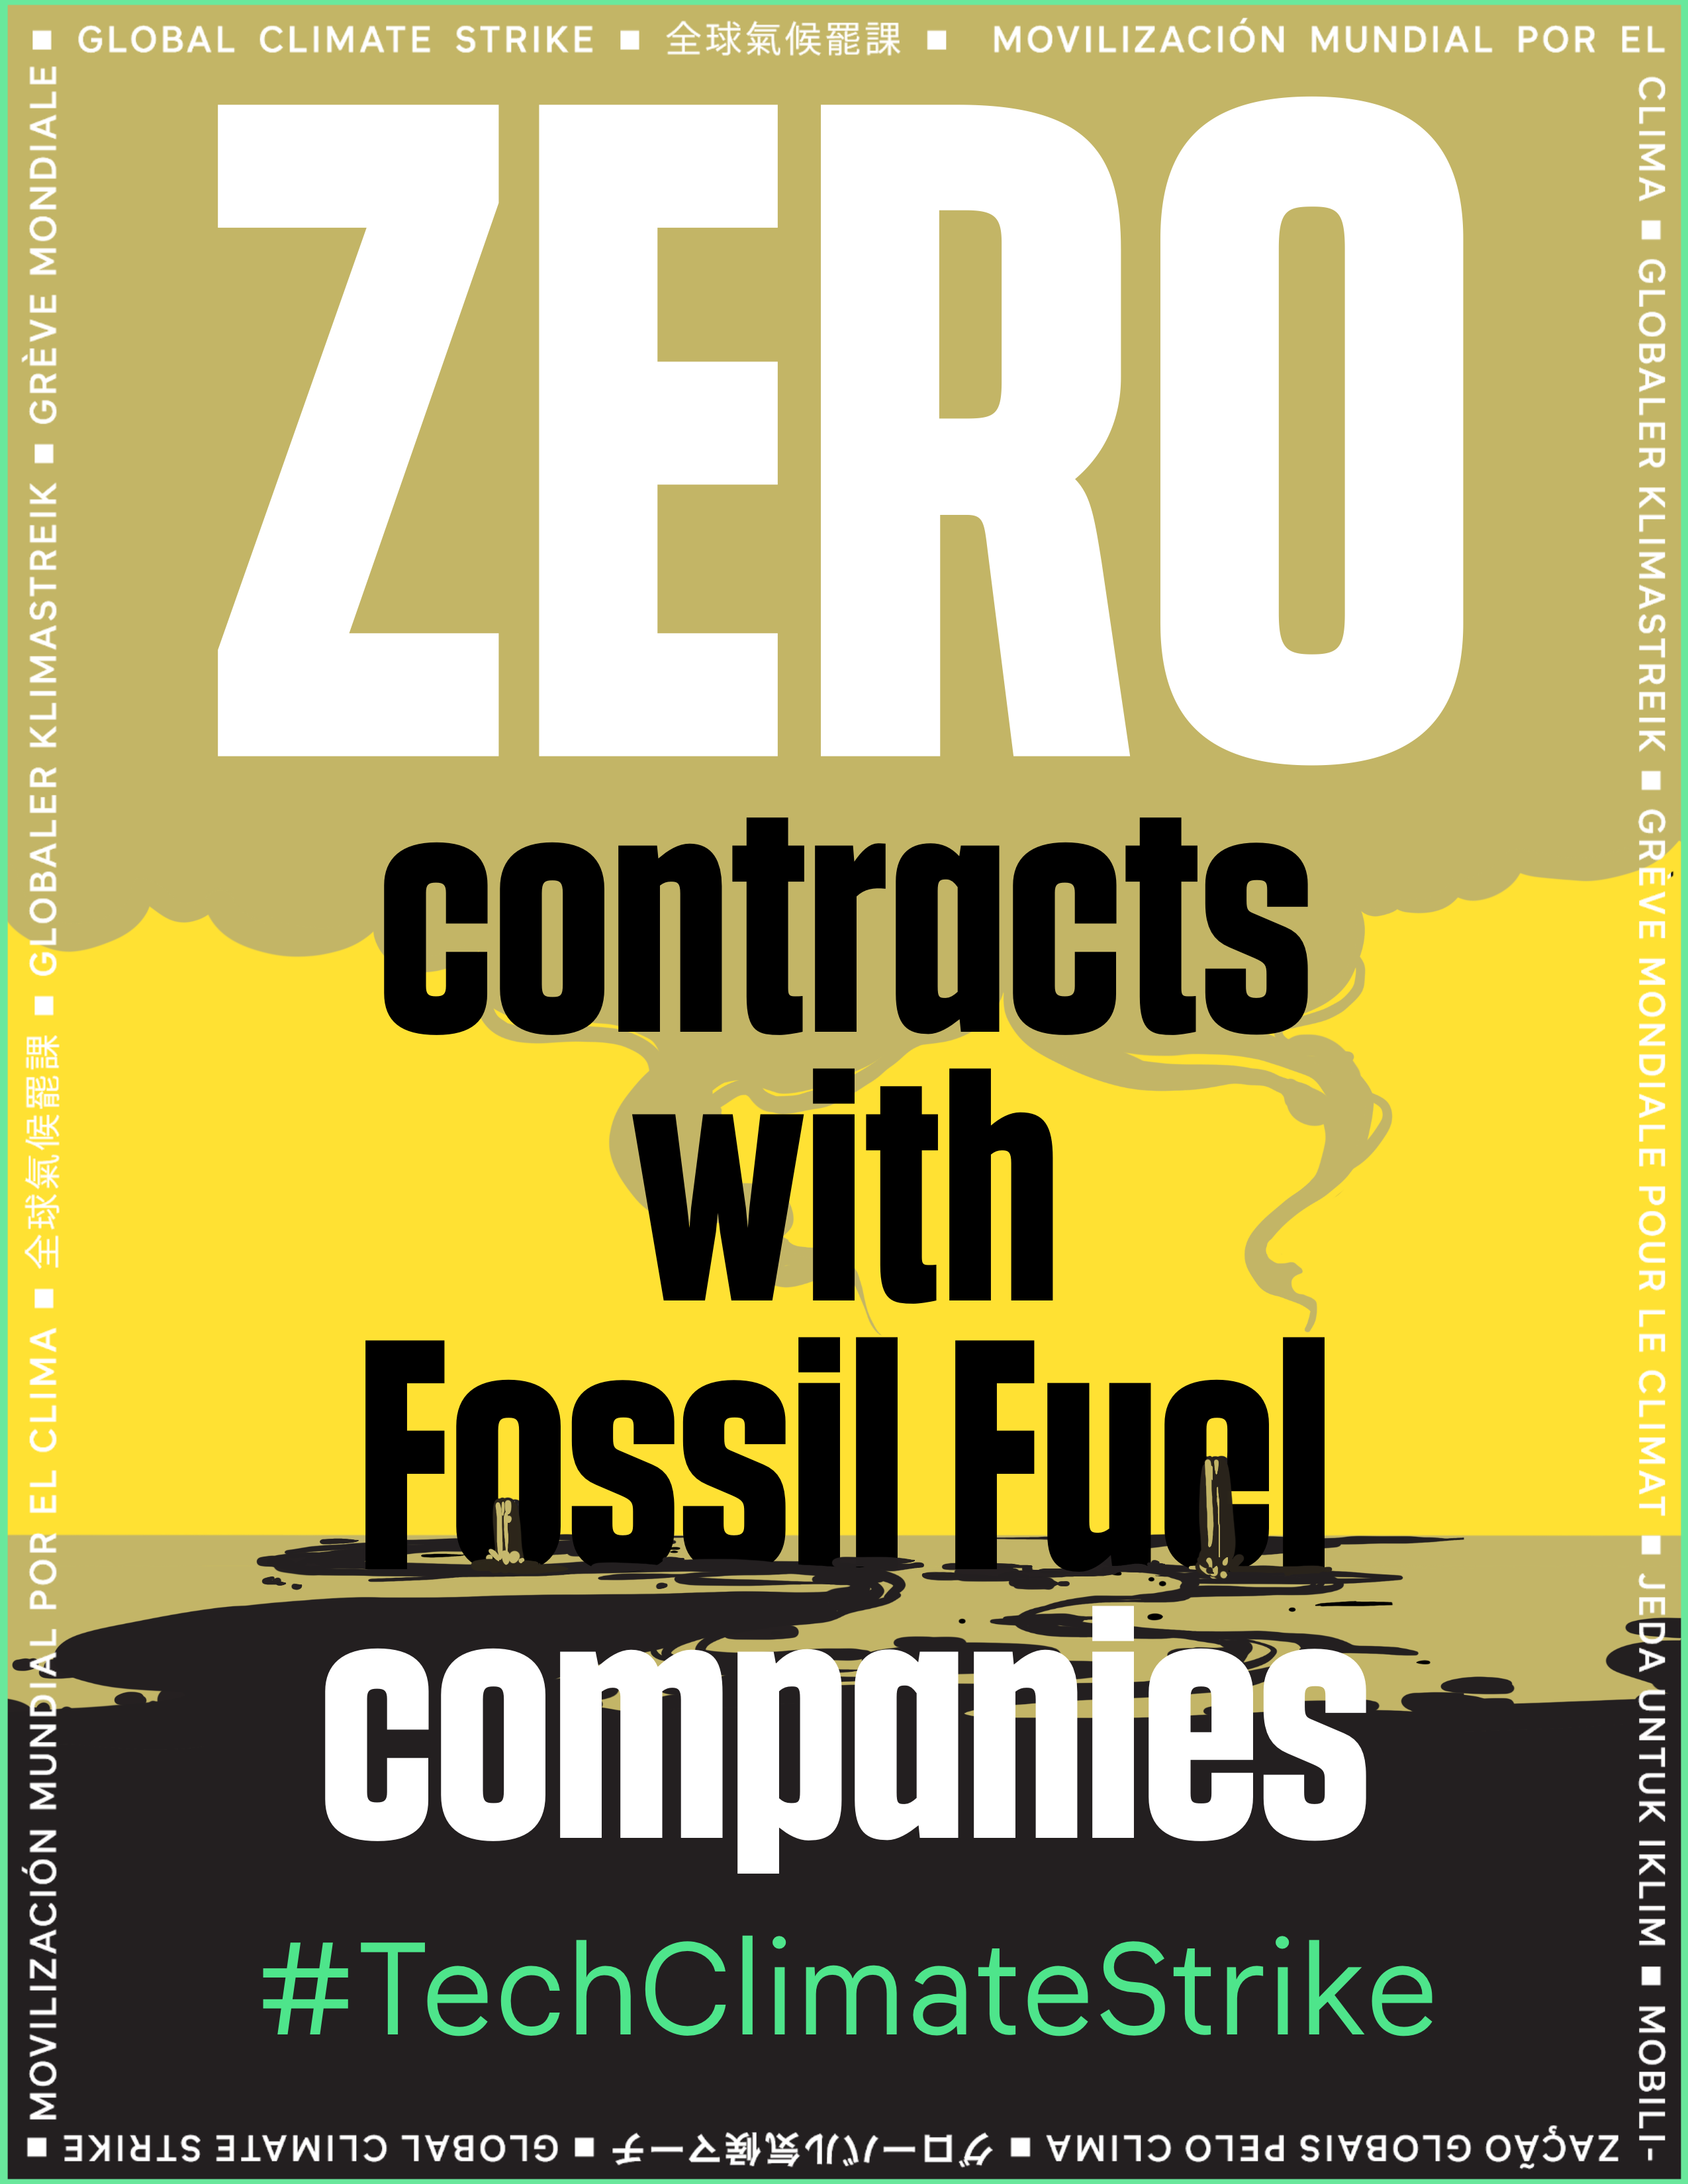 Zero contracts with fossil fuel companies